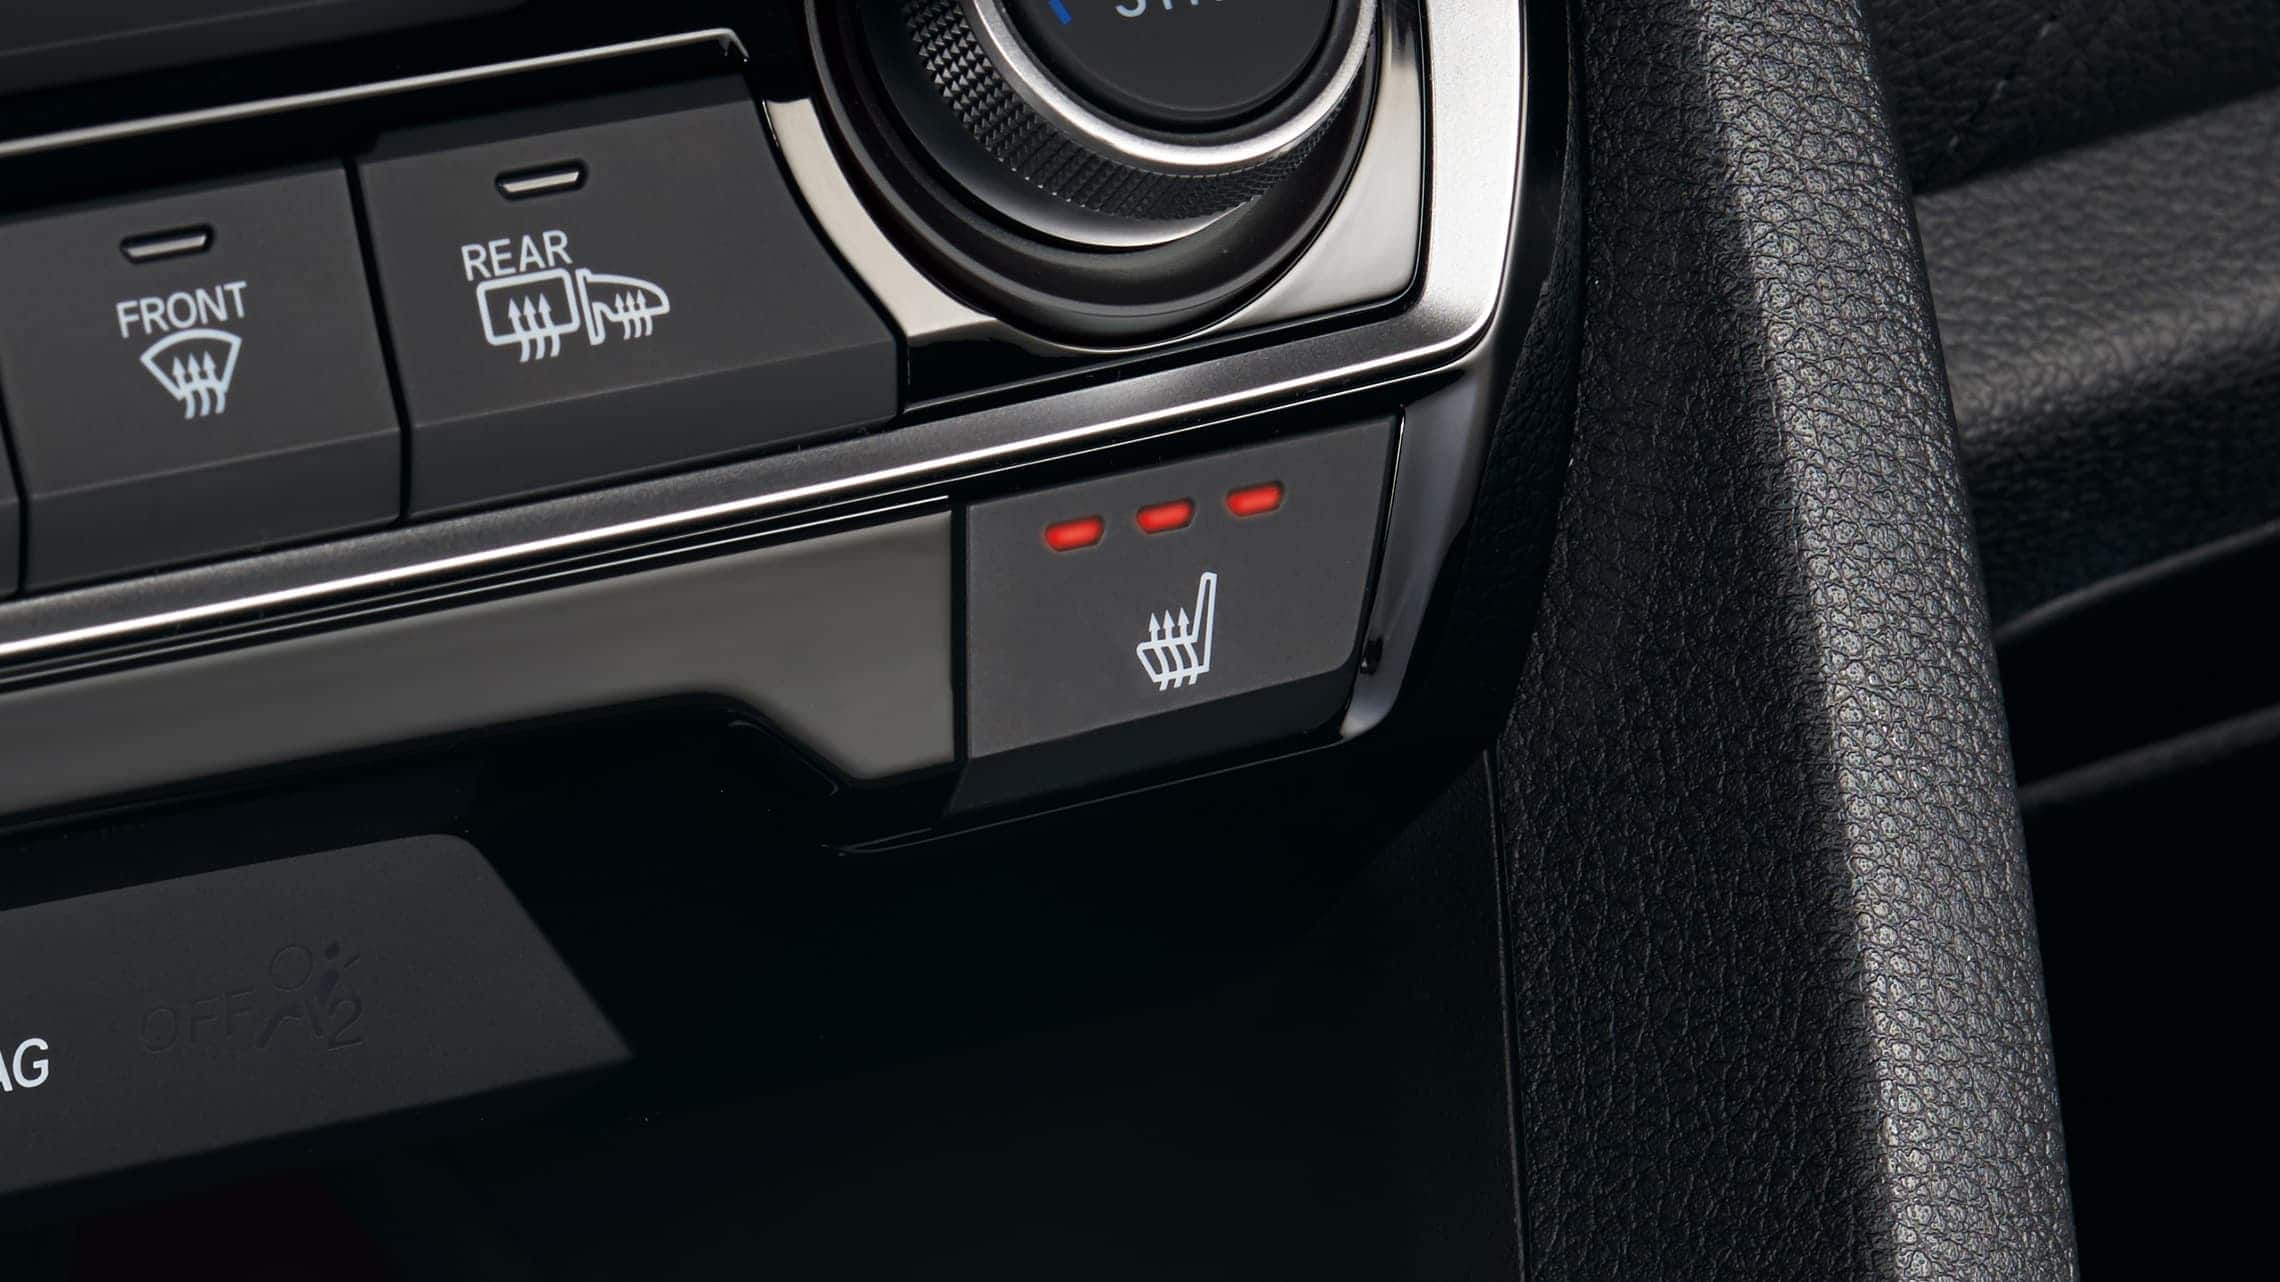 Heated front seat buttons detail in the 2020 Honda Civic Touring Sedan.